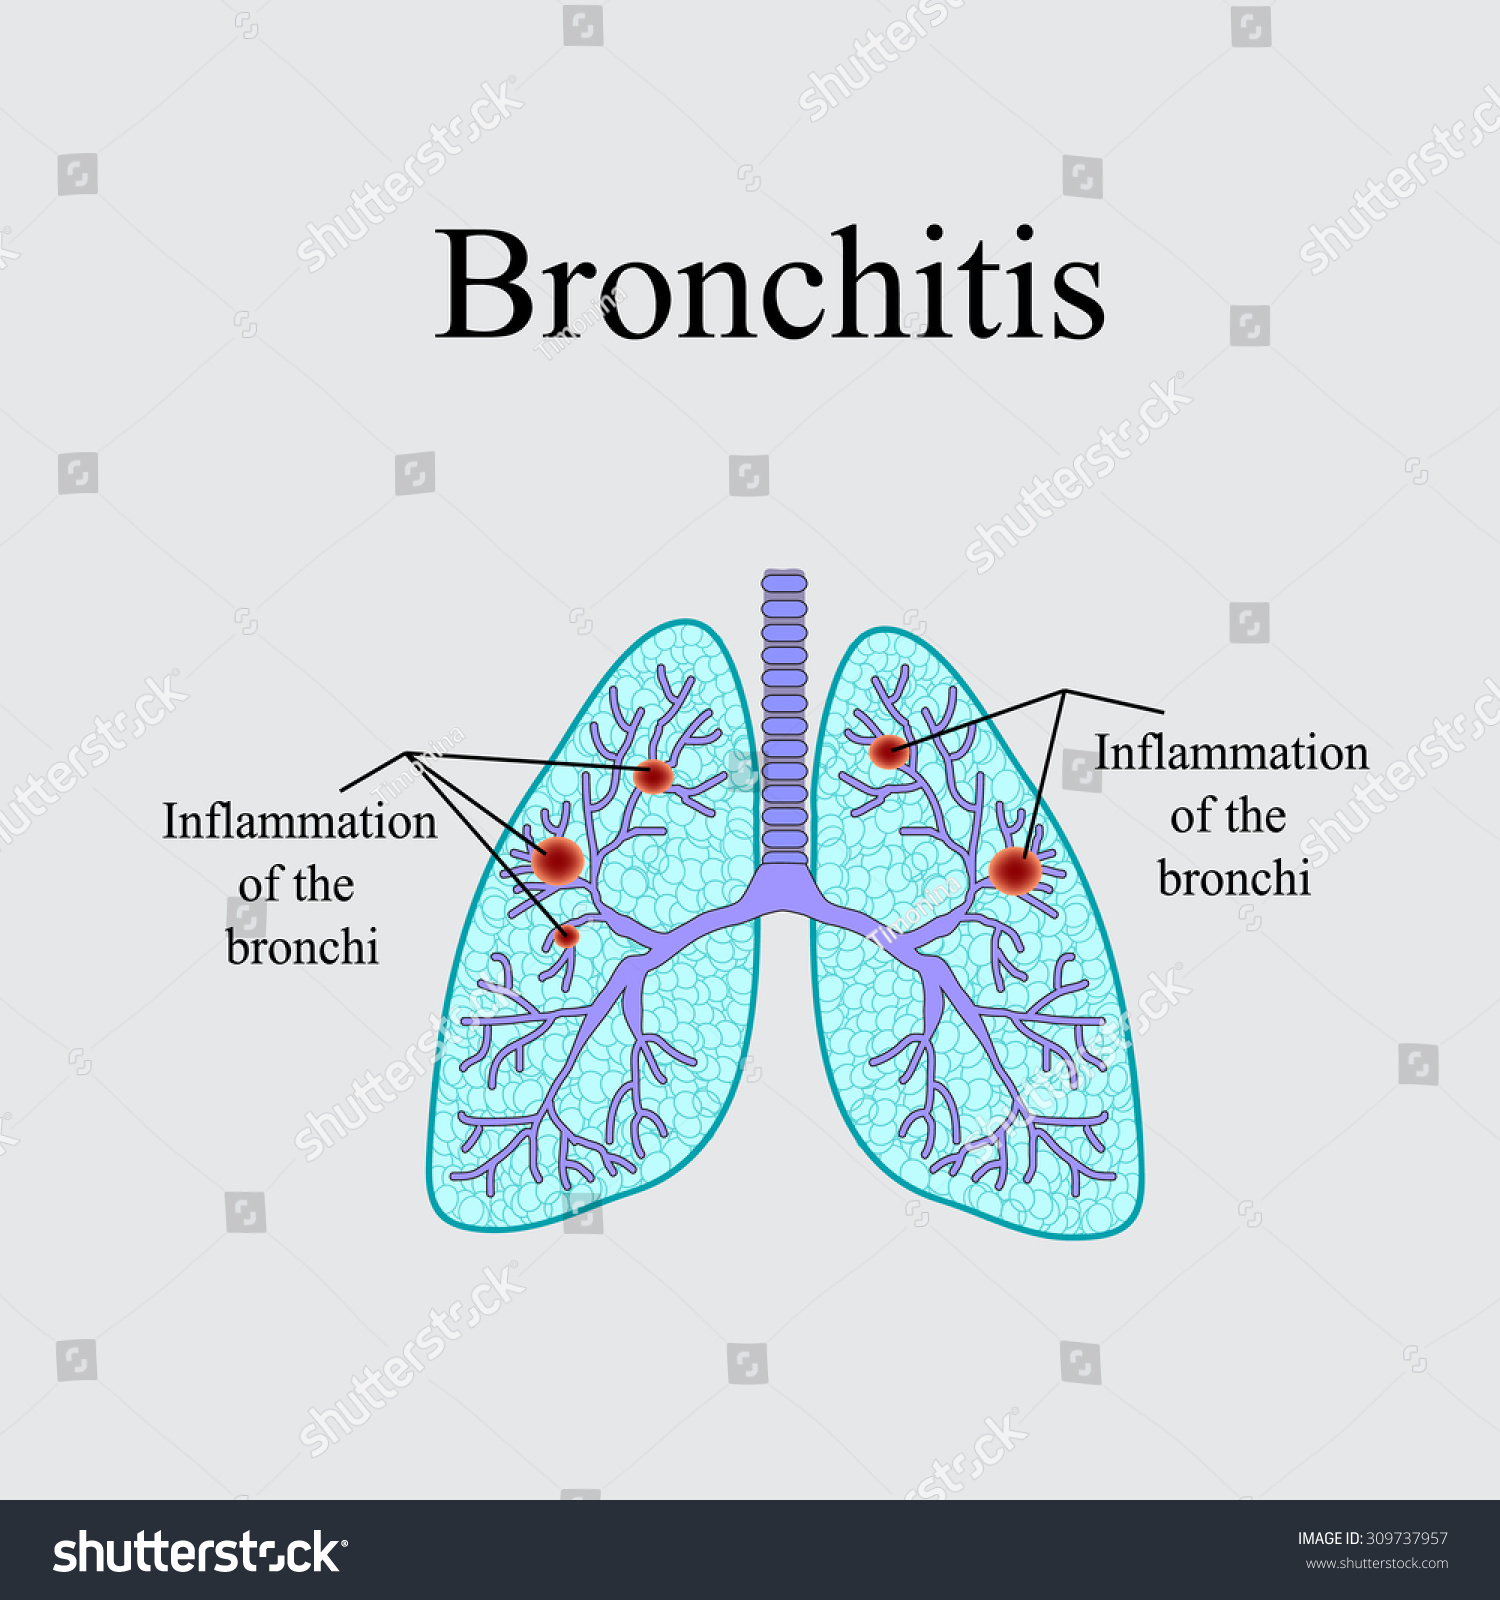 a description of bronchitis a inflammation of the bronchi